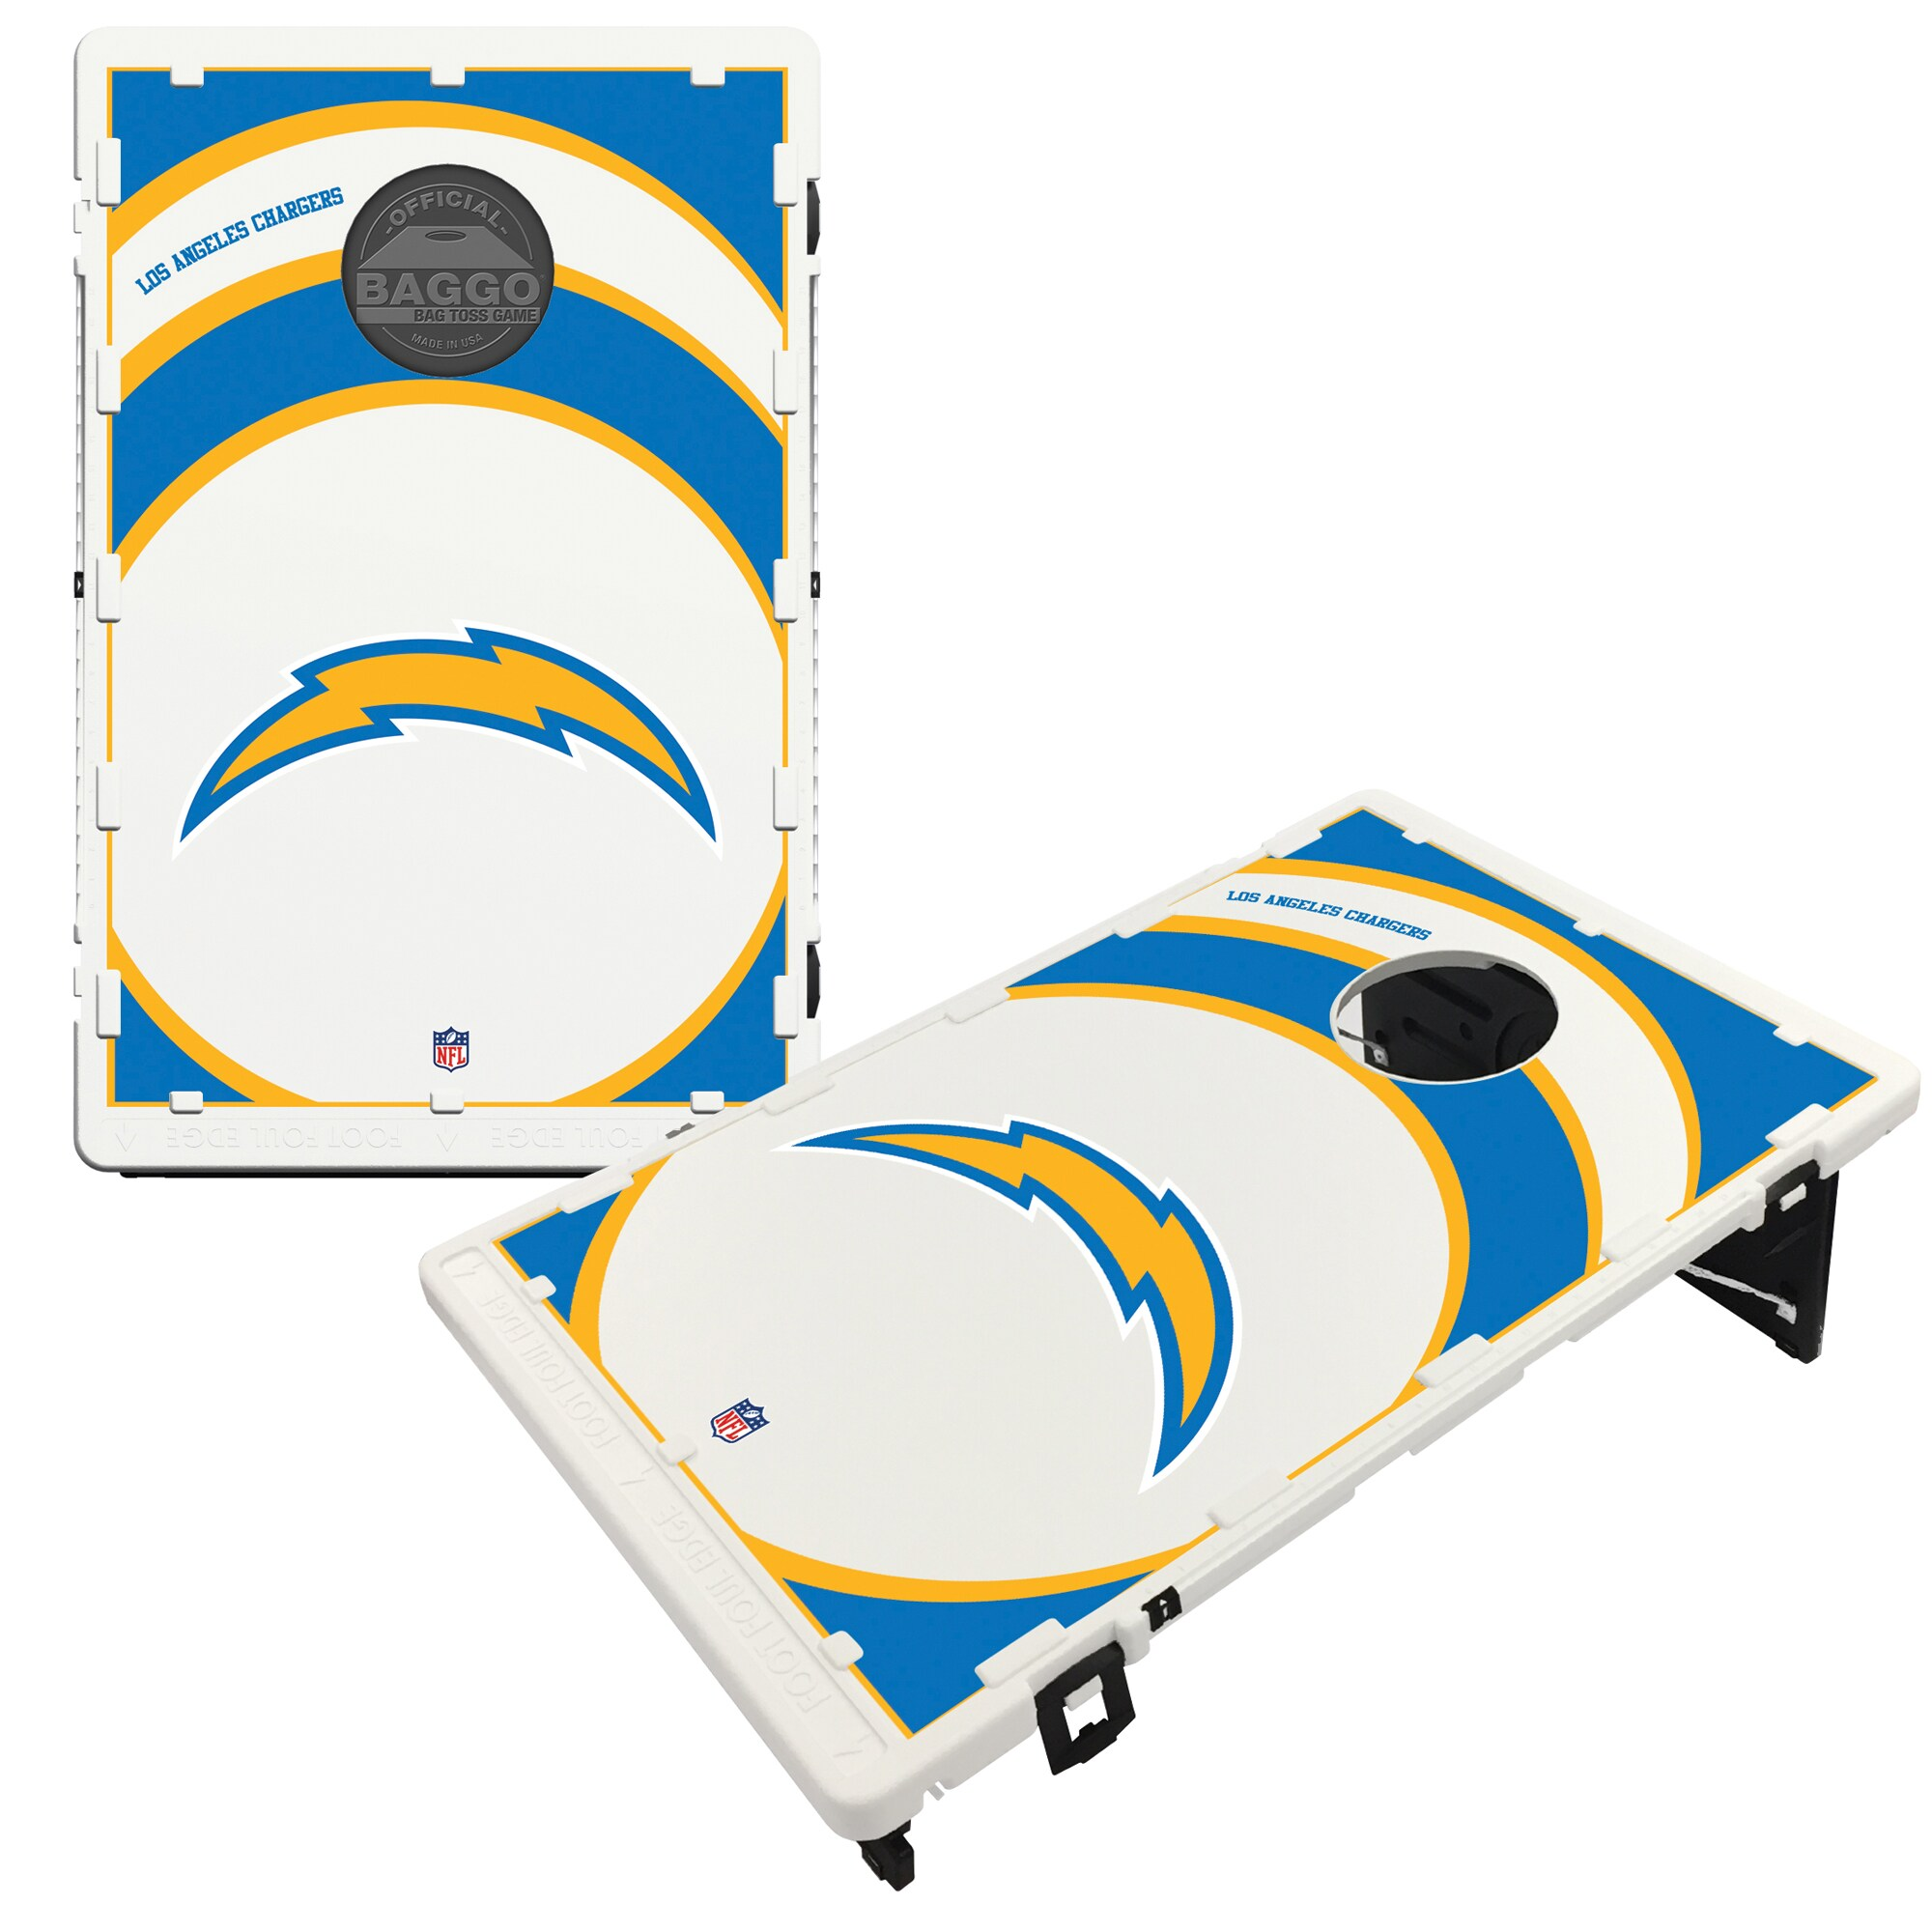 Los Angeles Chargers 2' x 3' BAGGO Vortex Cornhole Board Tailgate Toss Set